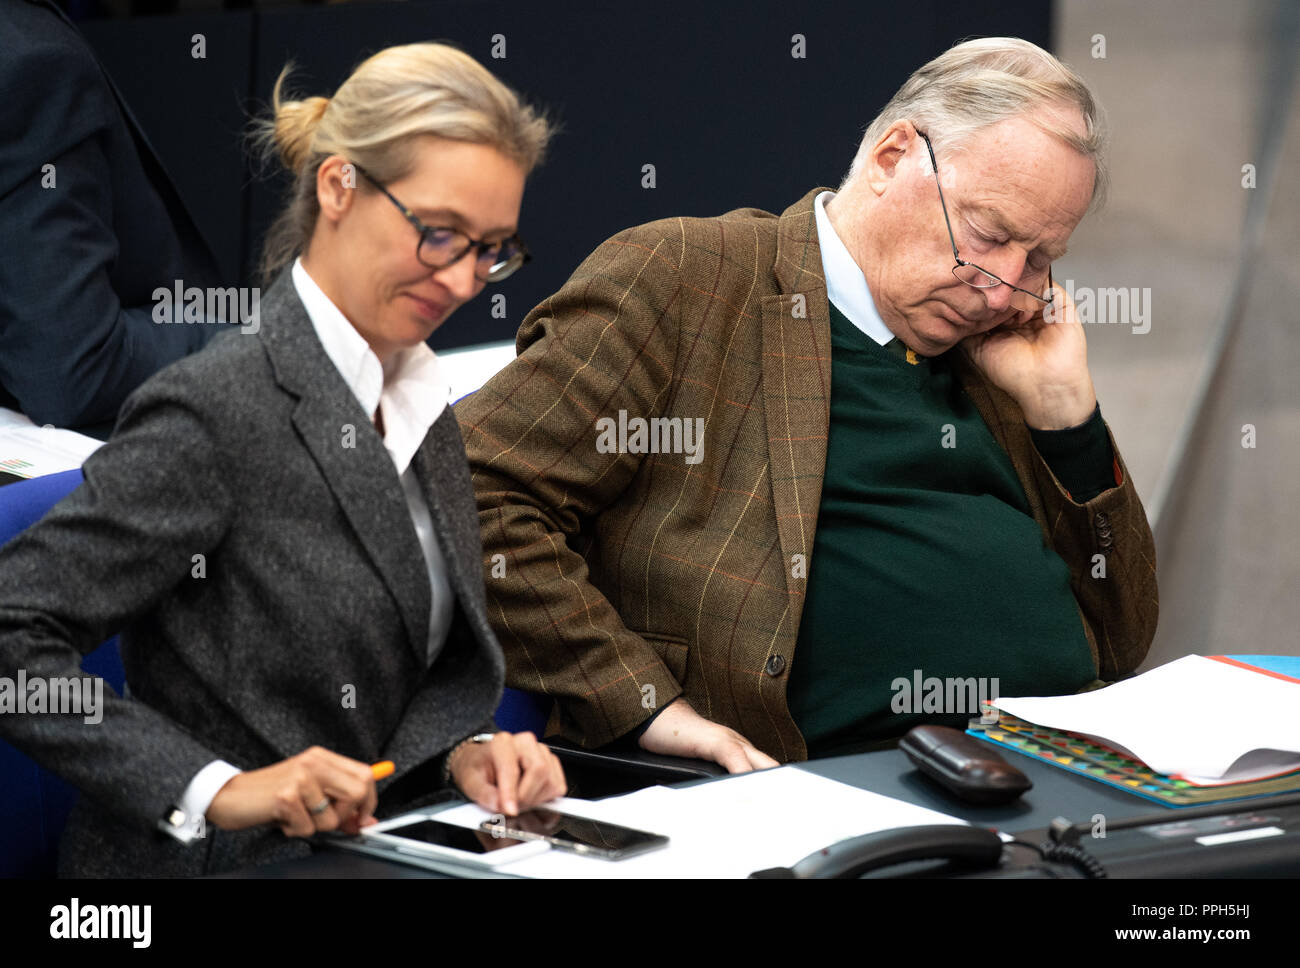 26 September 2018, Berlin: Alice Weidel (AfD), leader of the parliamentary group, and Alexander Gauland (AfD), leader of the parliamentary group, take part in the plenary session of the German Bundestag. Topics of the 51st session are a government survey with Health Minister Spahn (CDU) on the 'law for faster appointments and better care' and a question time on the results of the housing summit in Berlin. Photo: Fabian Sommer/dpa - Stock Image